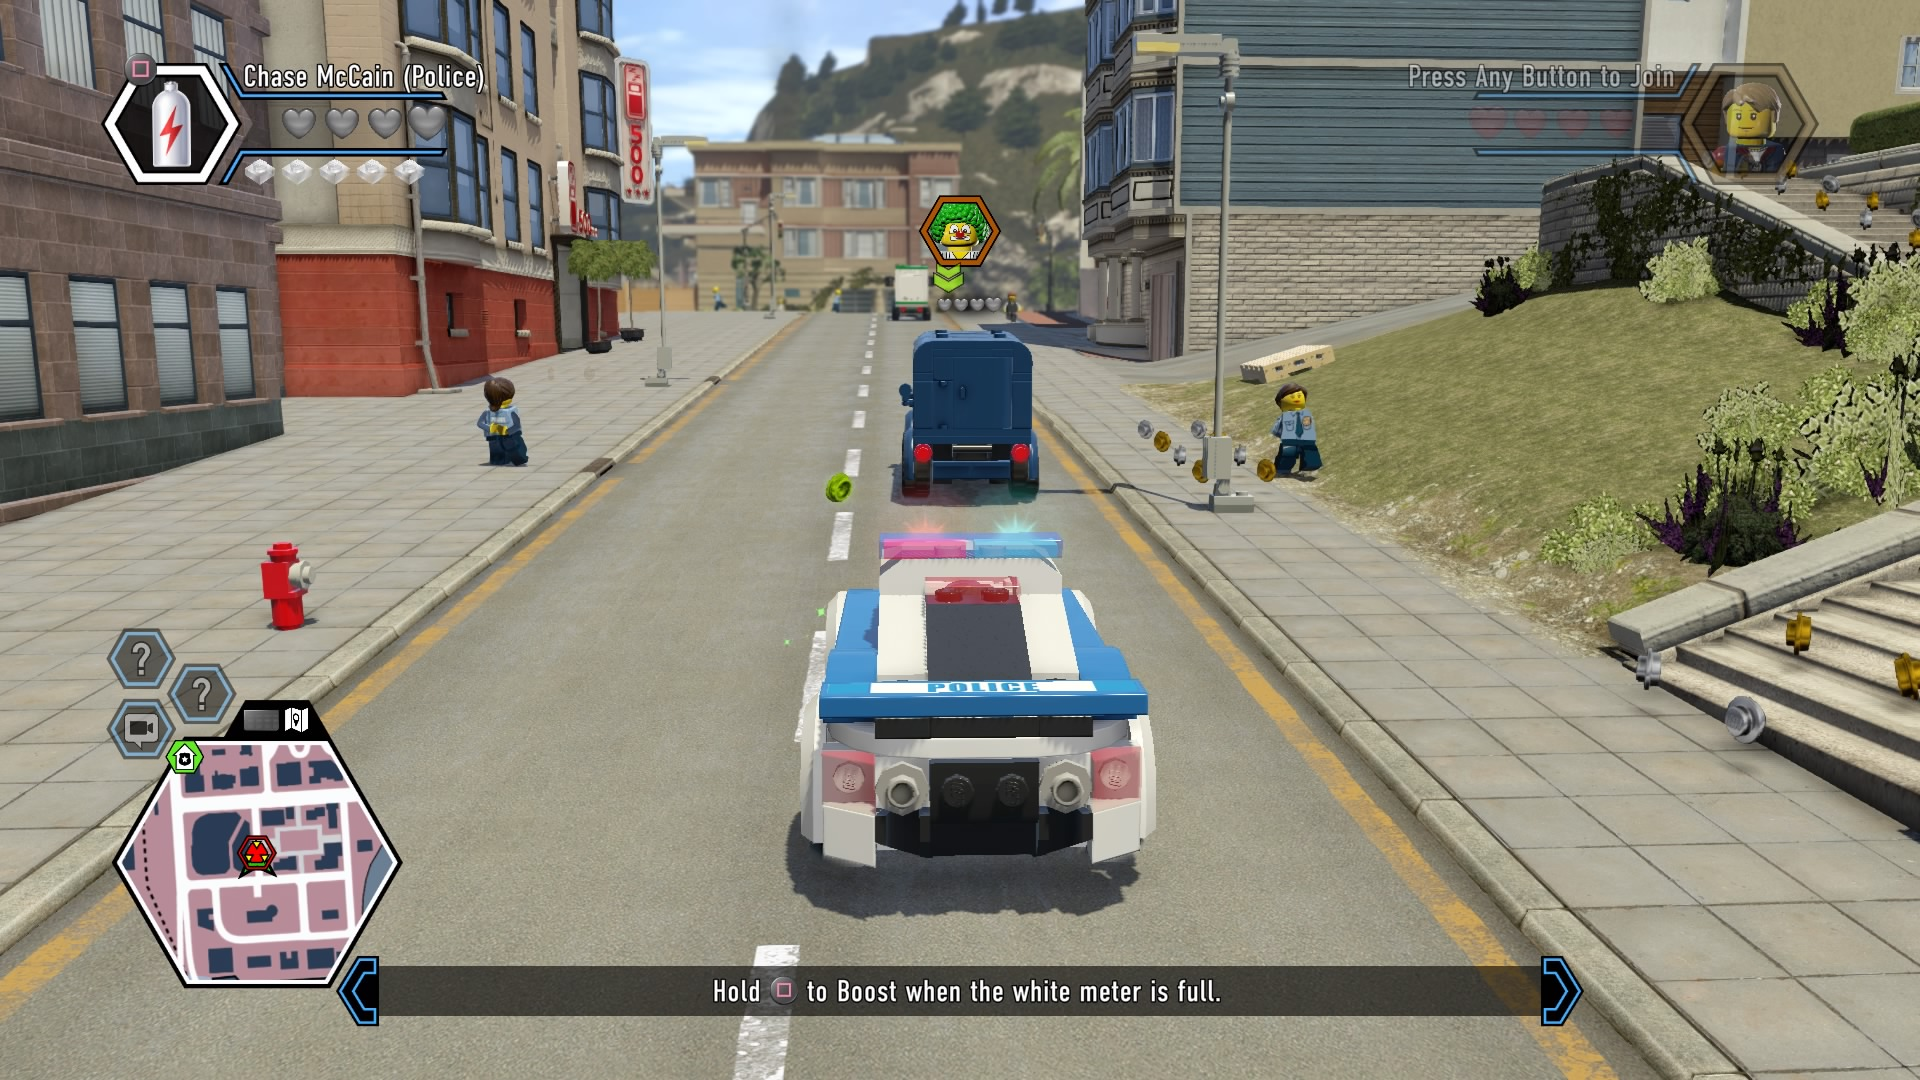 Lego City Undercover Complete Walkthrough Chapter 1 Guide Walkthroughs The Escapist